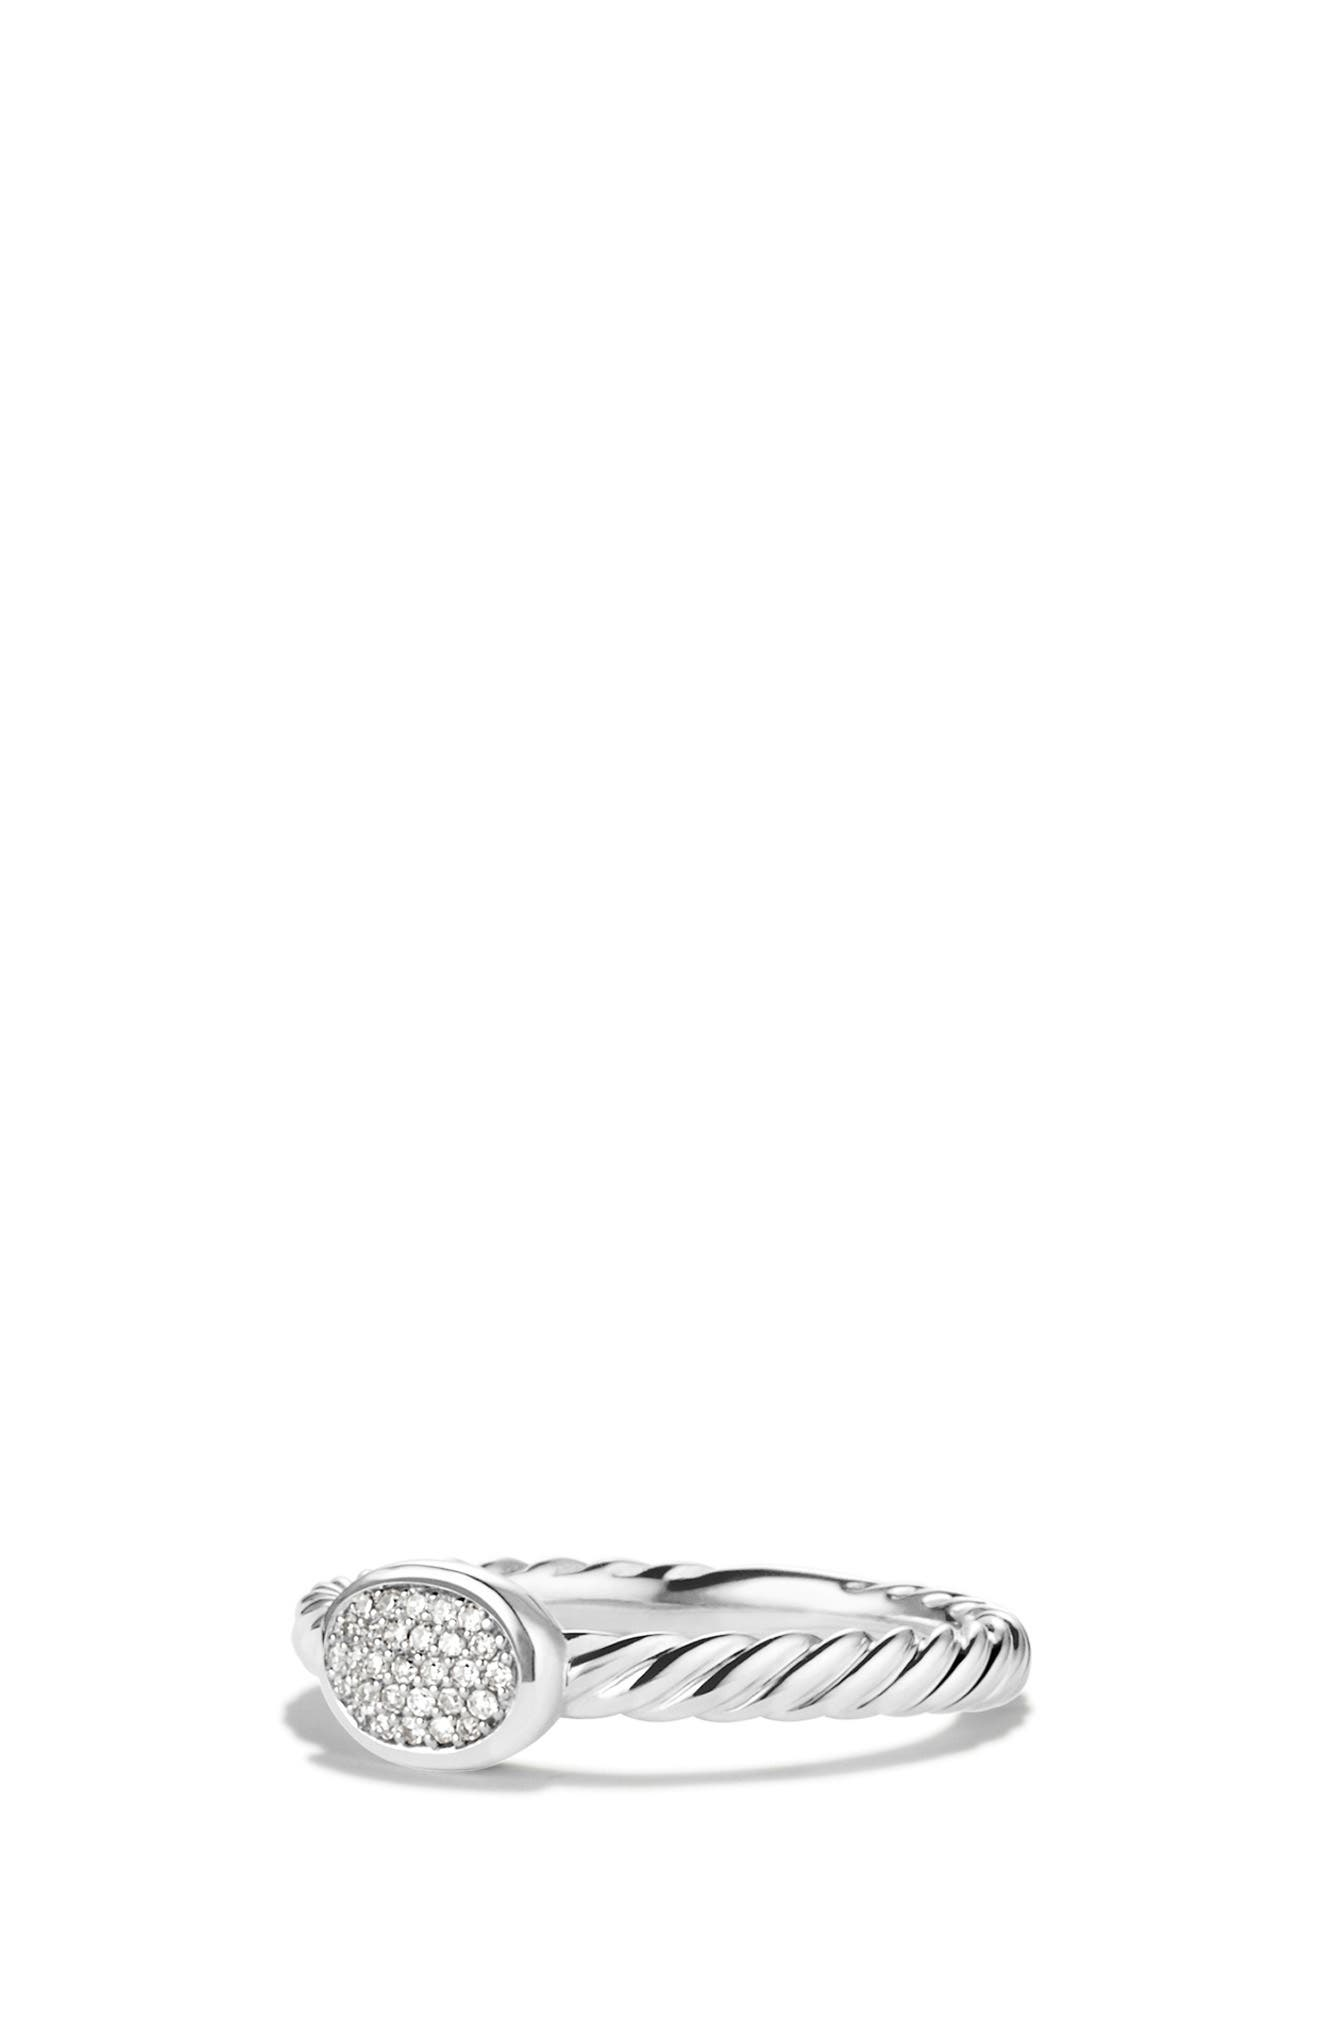 David Yurman Petite Pavé Oval Ring with Diamonds